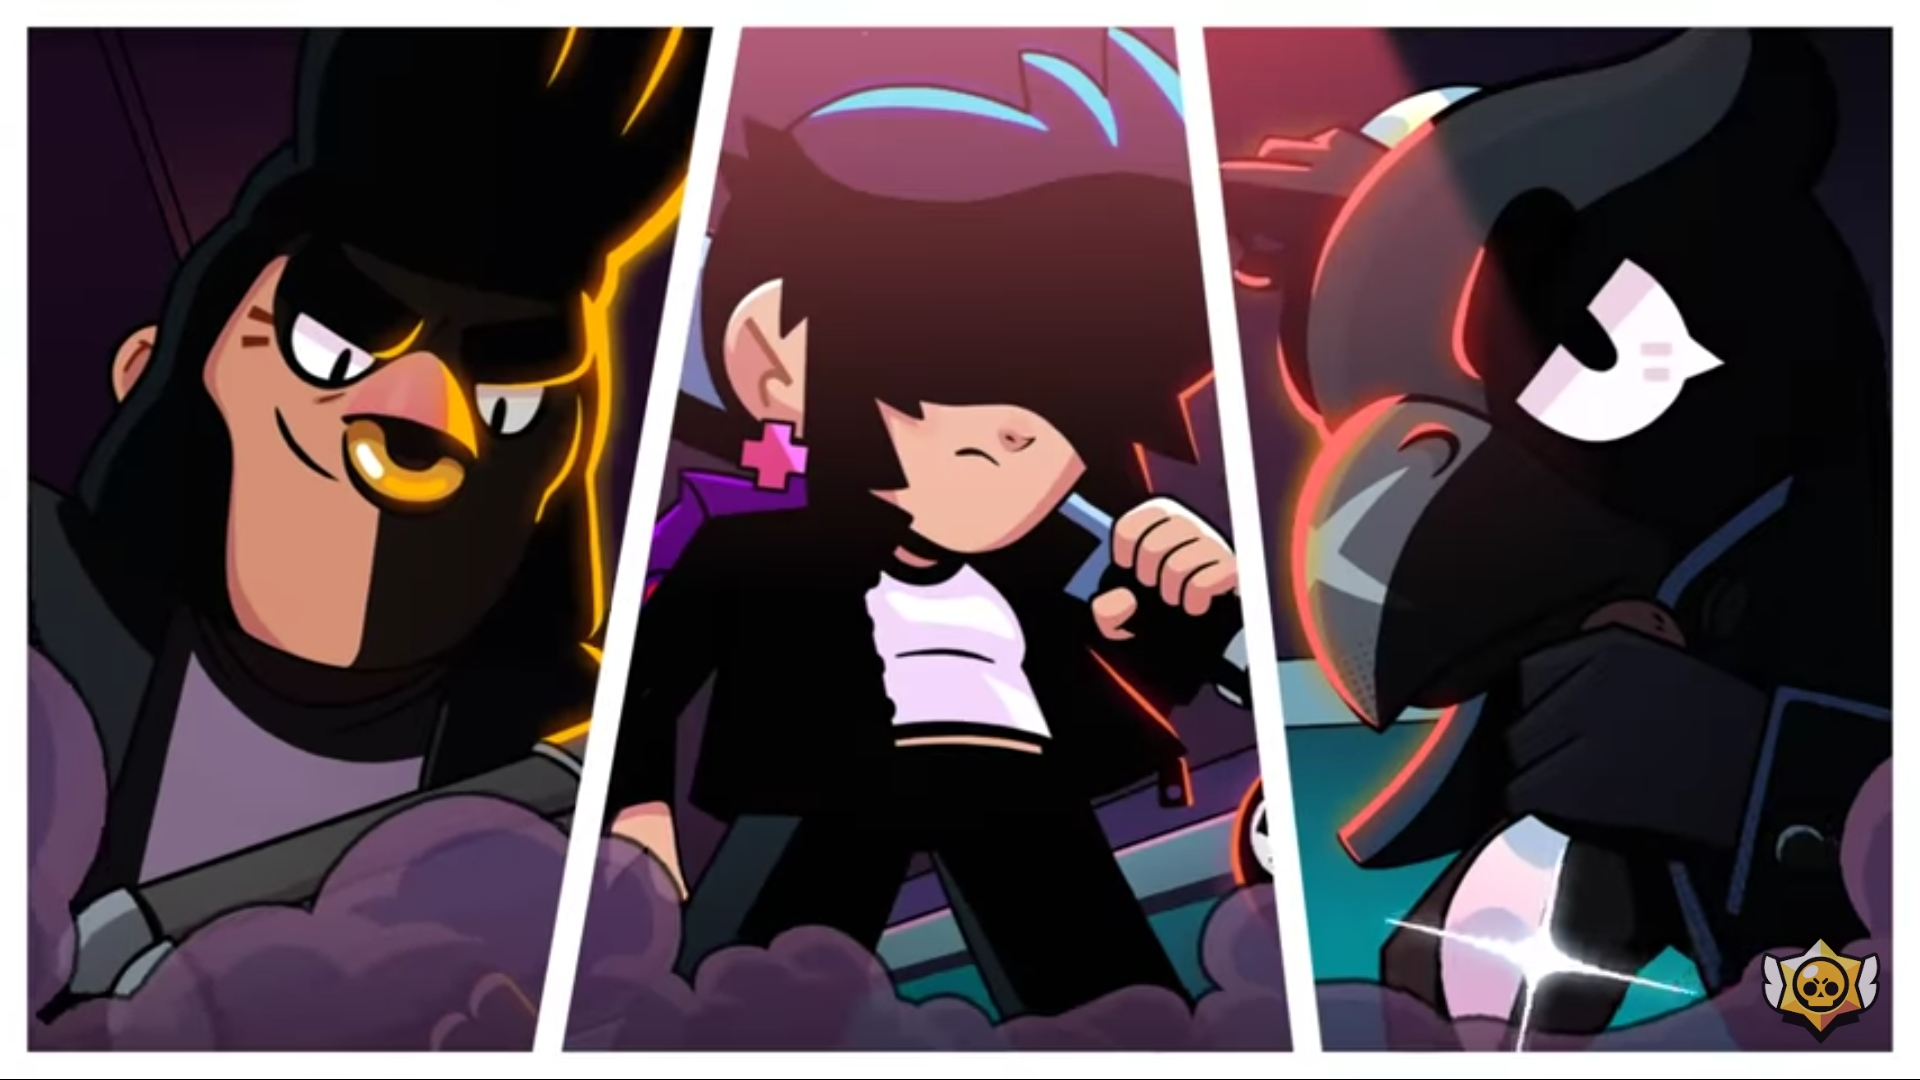 Who's the middle brawler? Is it aknew brawler?Is it simon?  Comment who you think hebpr she might be